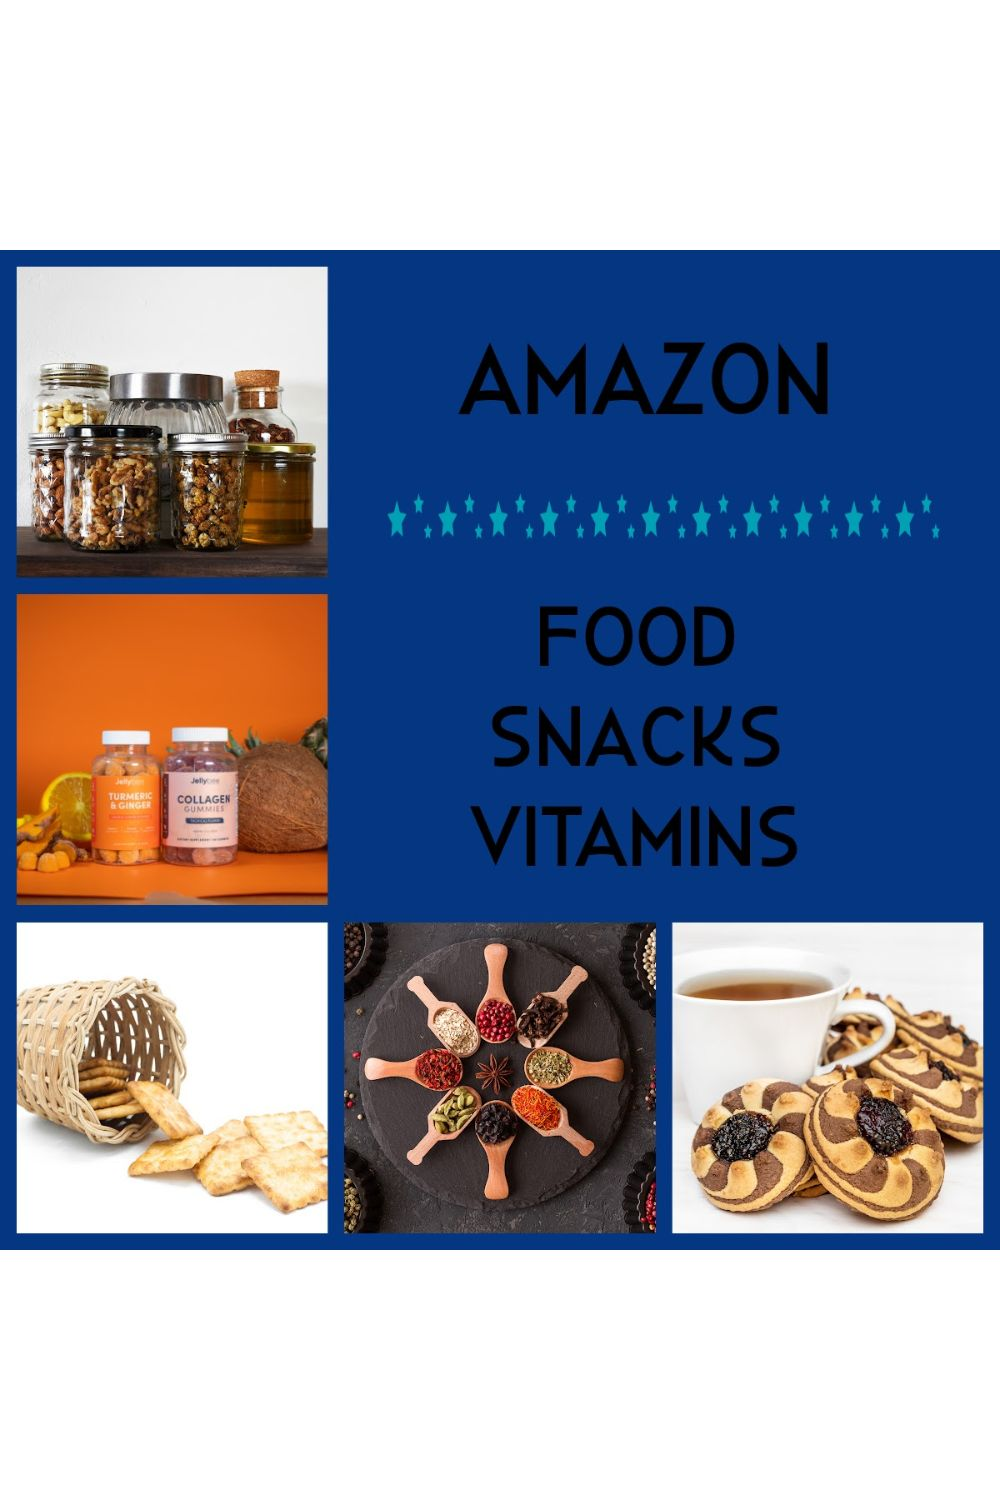 Amazon Shopping for your Vitamins, Snacks, and Food!